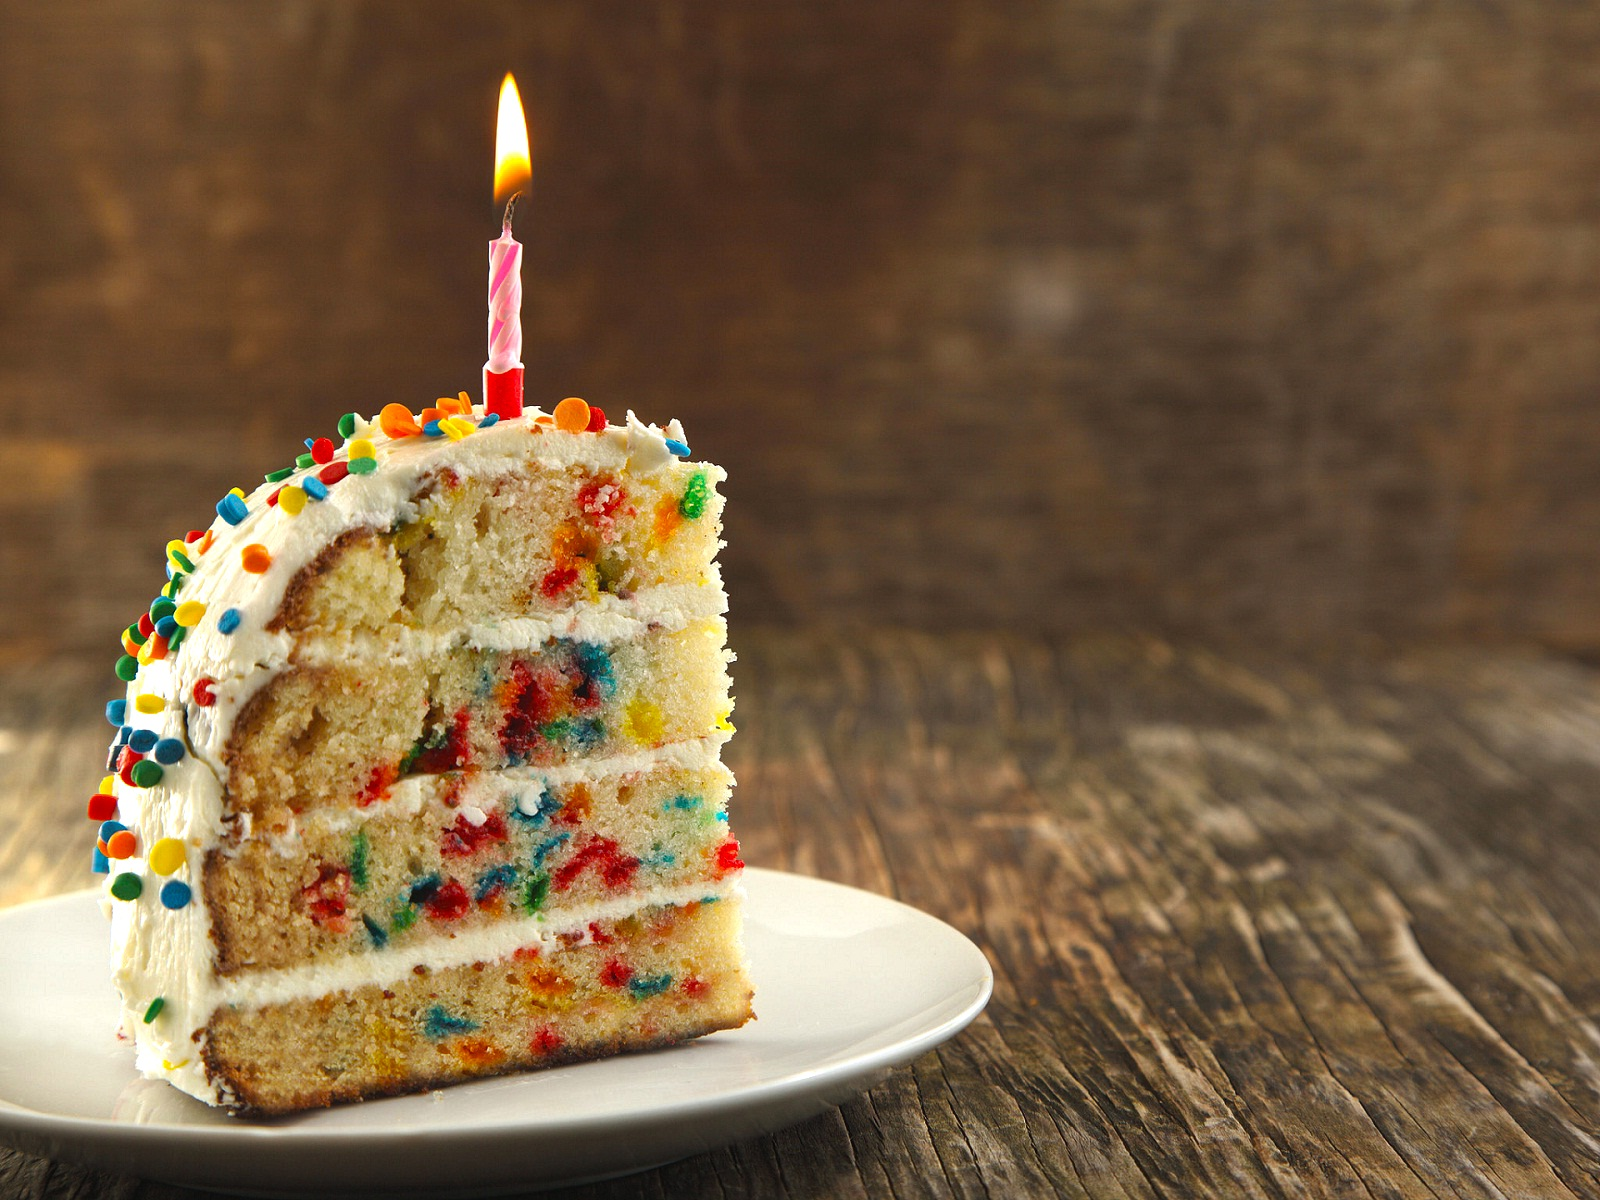 birthday hd ; happy-birthday-cake-hd-wallpaper-1